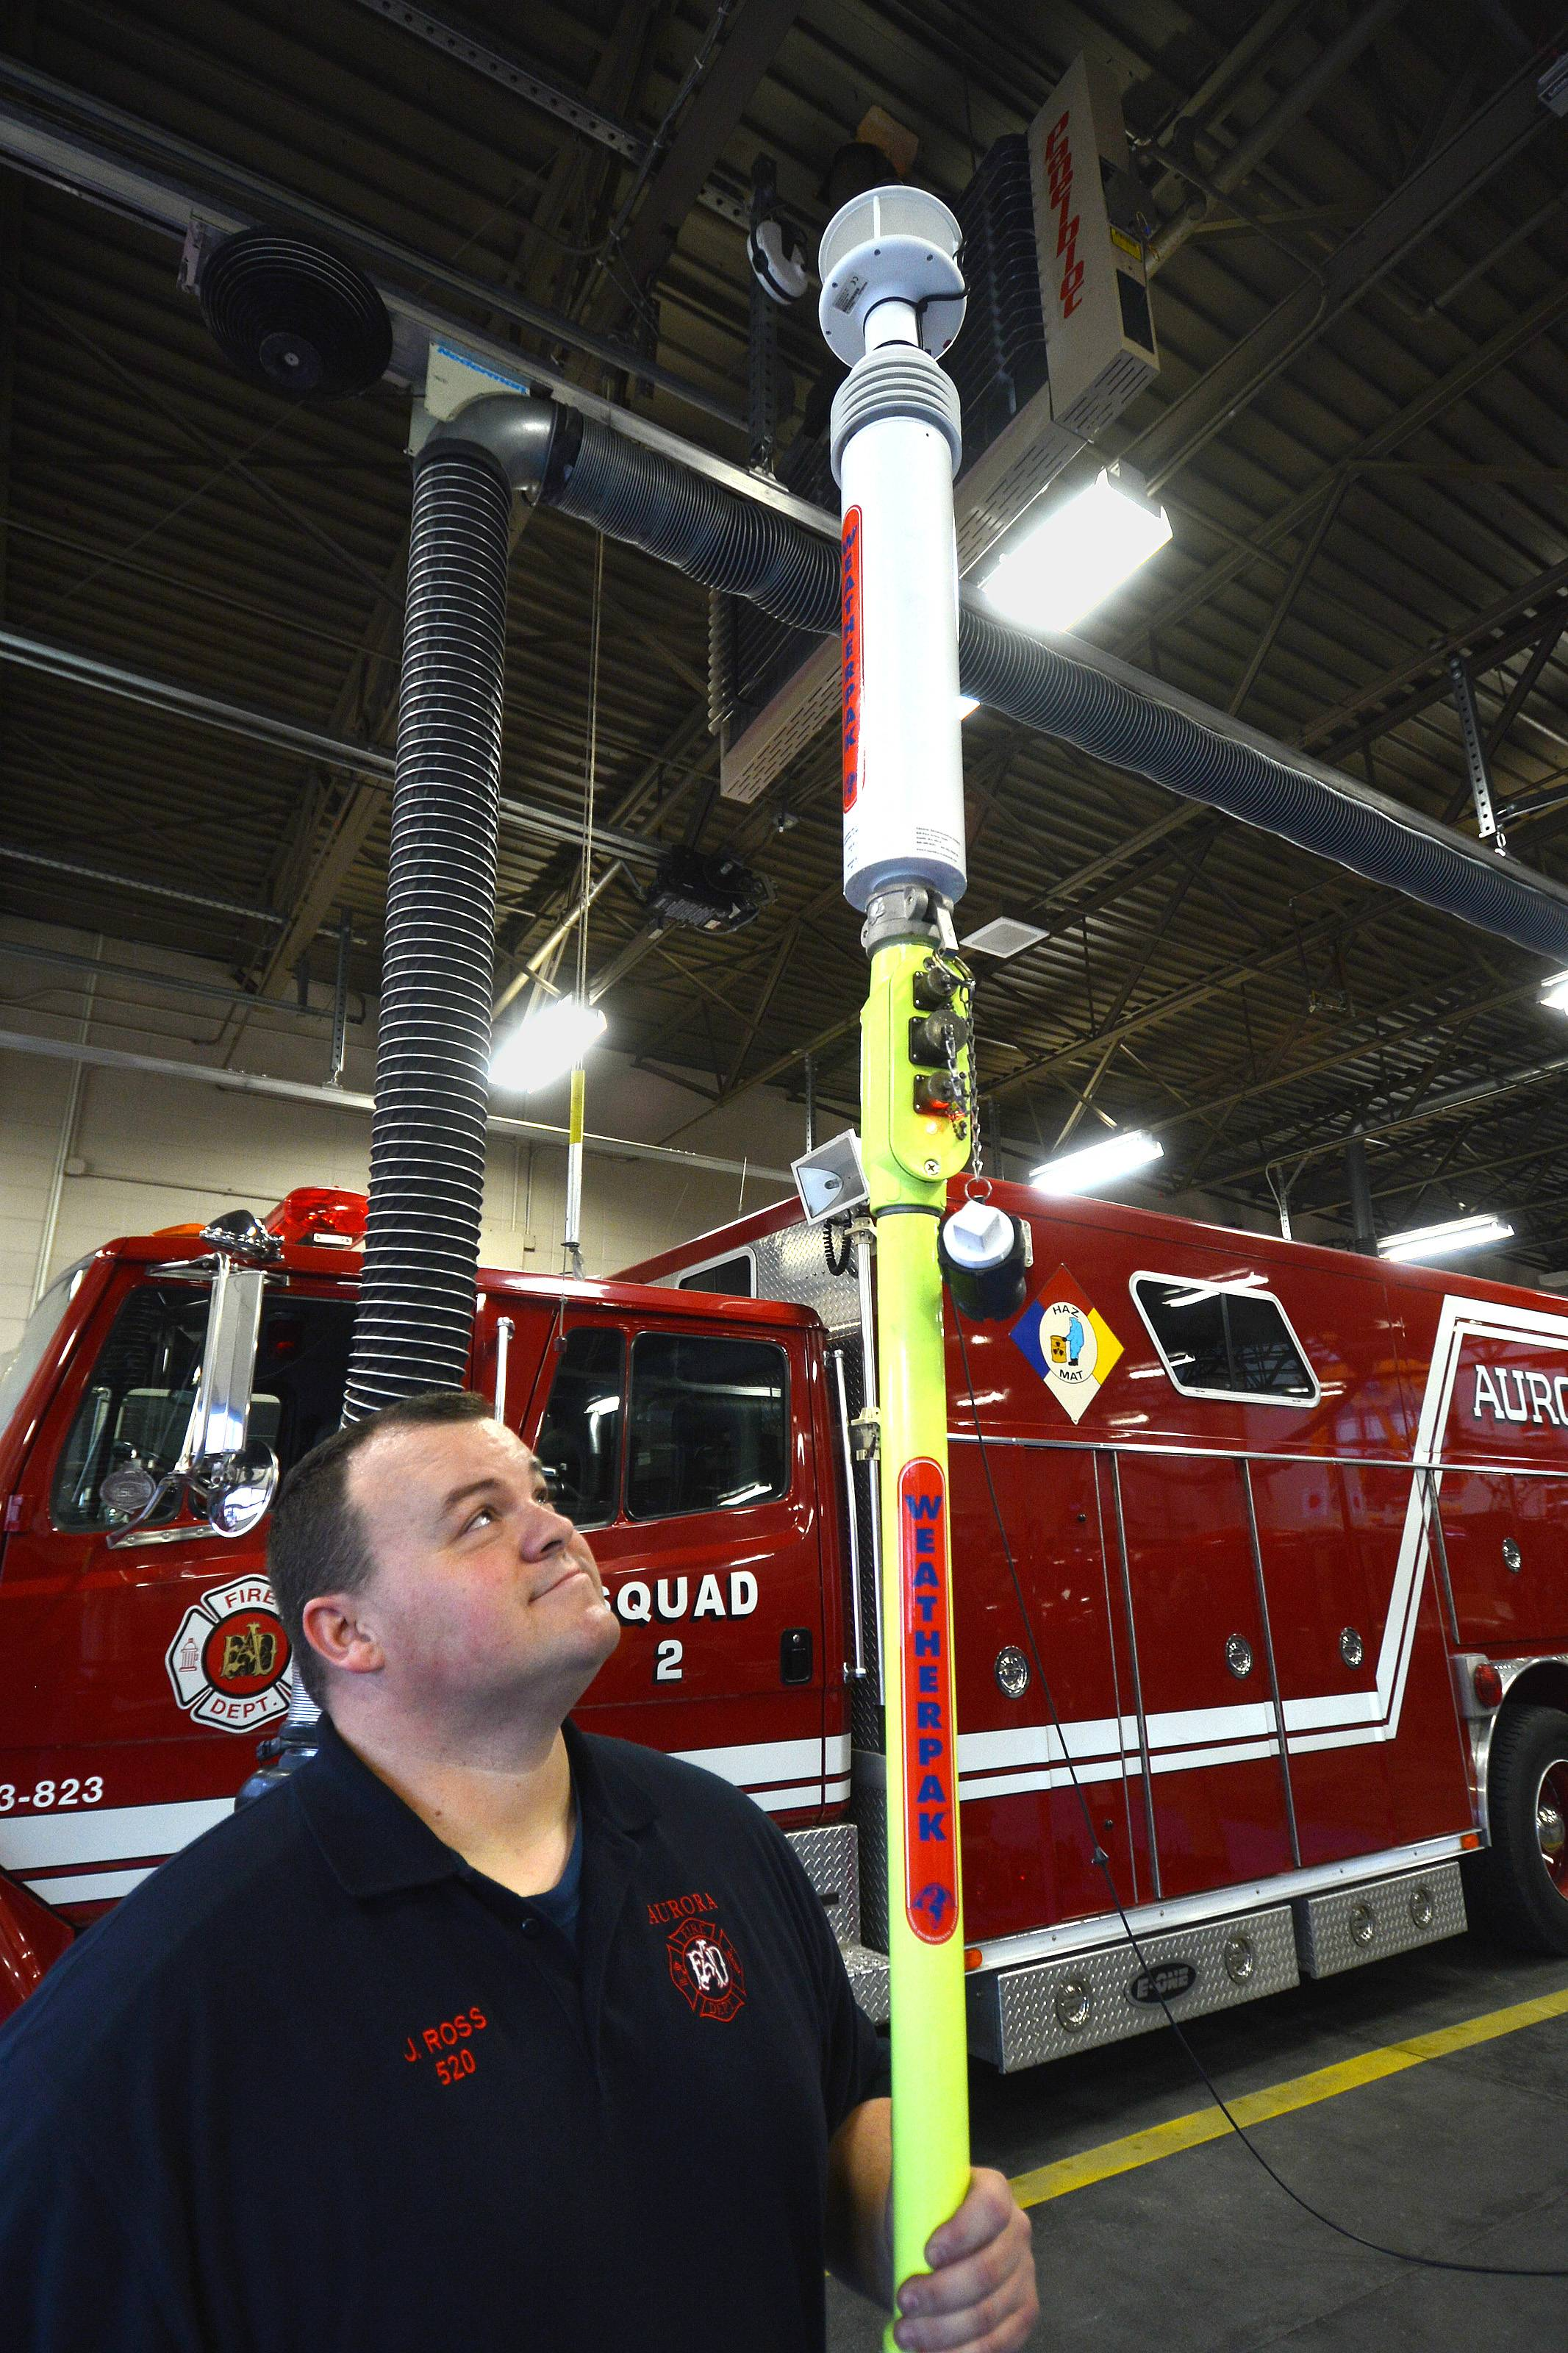 Aurora Fire Department hazmat specialist John Ross looks at a portable weather station that monitors temperature, humidity, wind direction and speed.